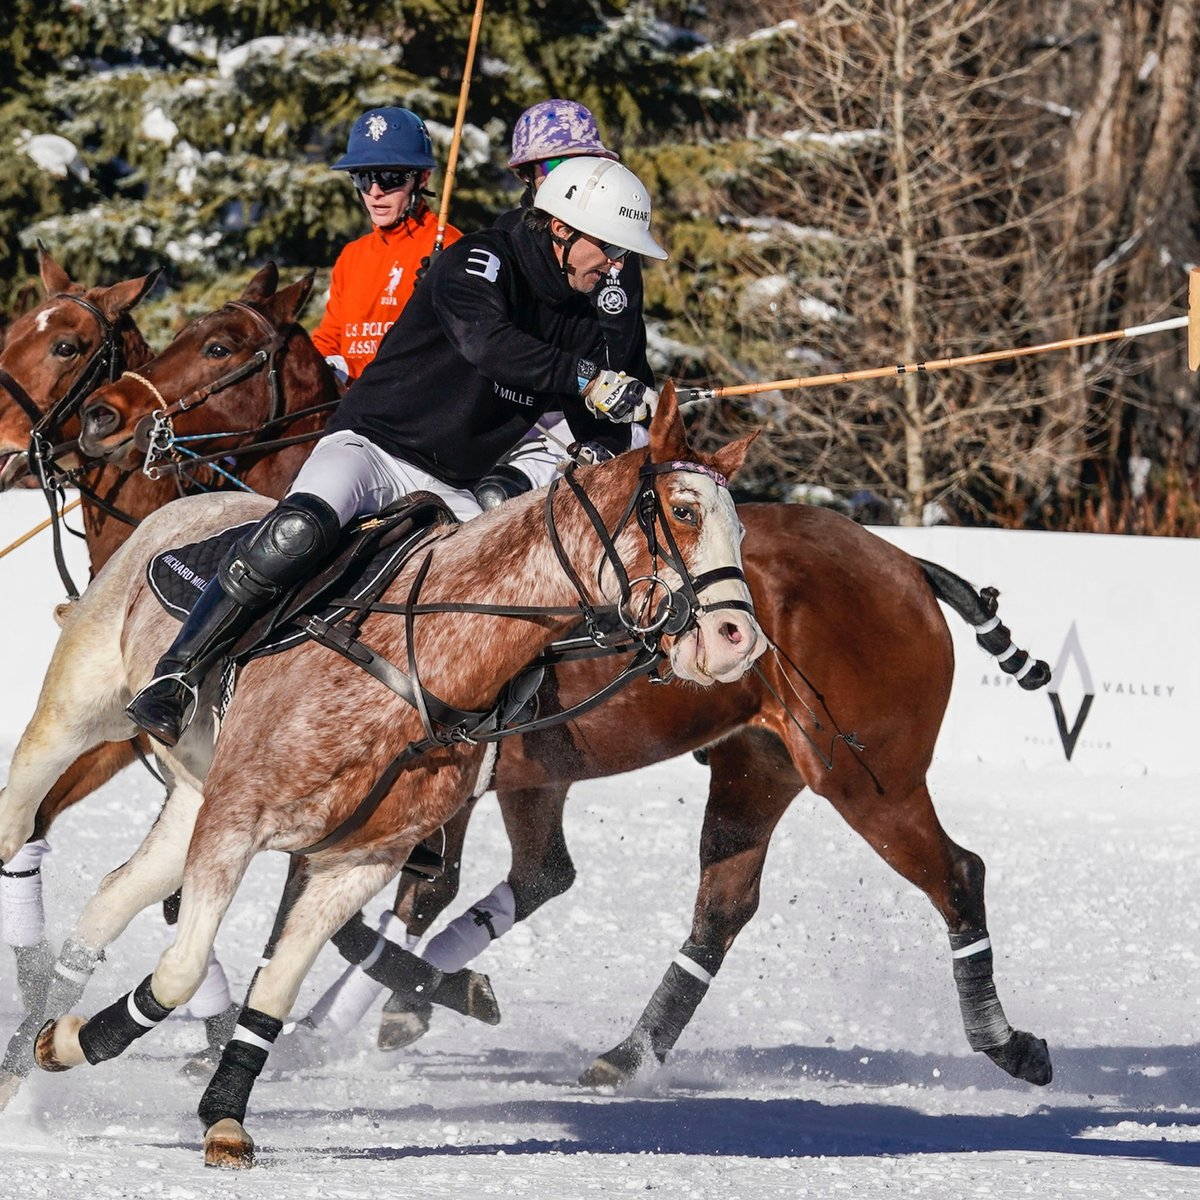 For the second year in a row, Argentinean 10-goaler Pablo Mac Donough led Team #RichardMille to first place in the World Snow Polo Championships, in Aspen, Colorado last week. It wasn't an easy battle, as Team U.S. Polo Assn.